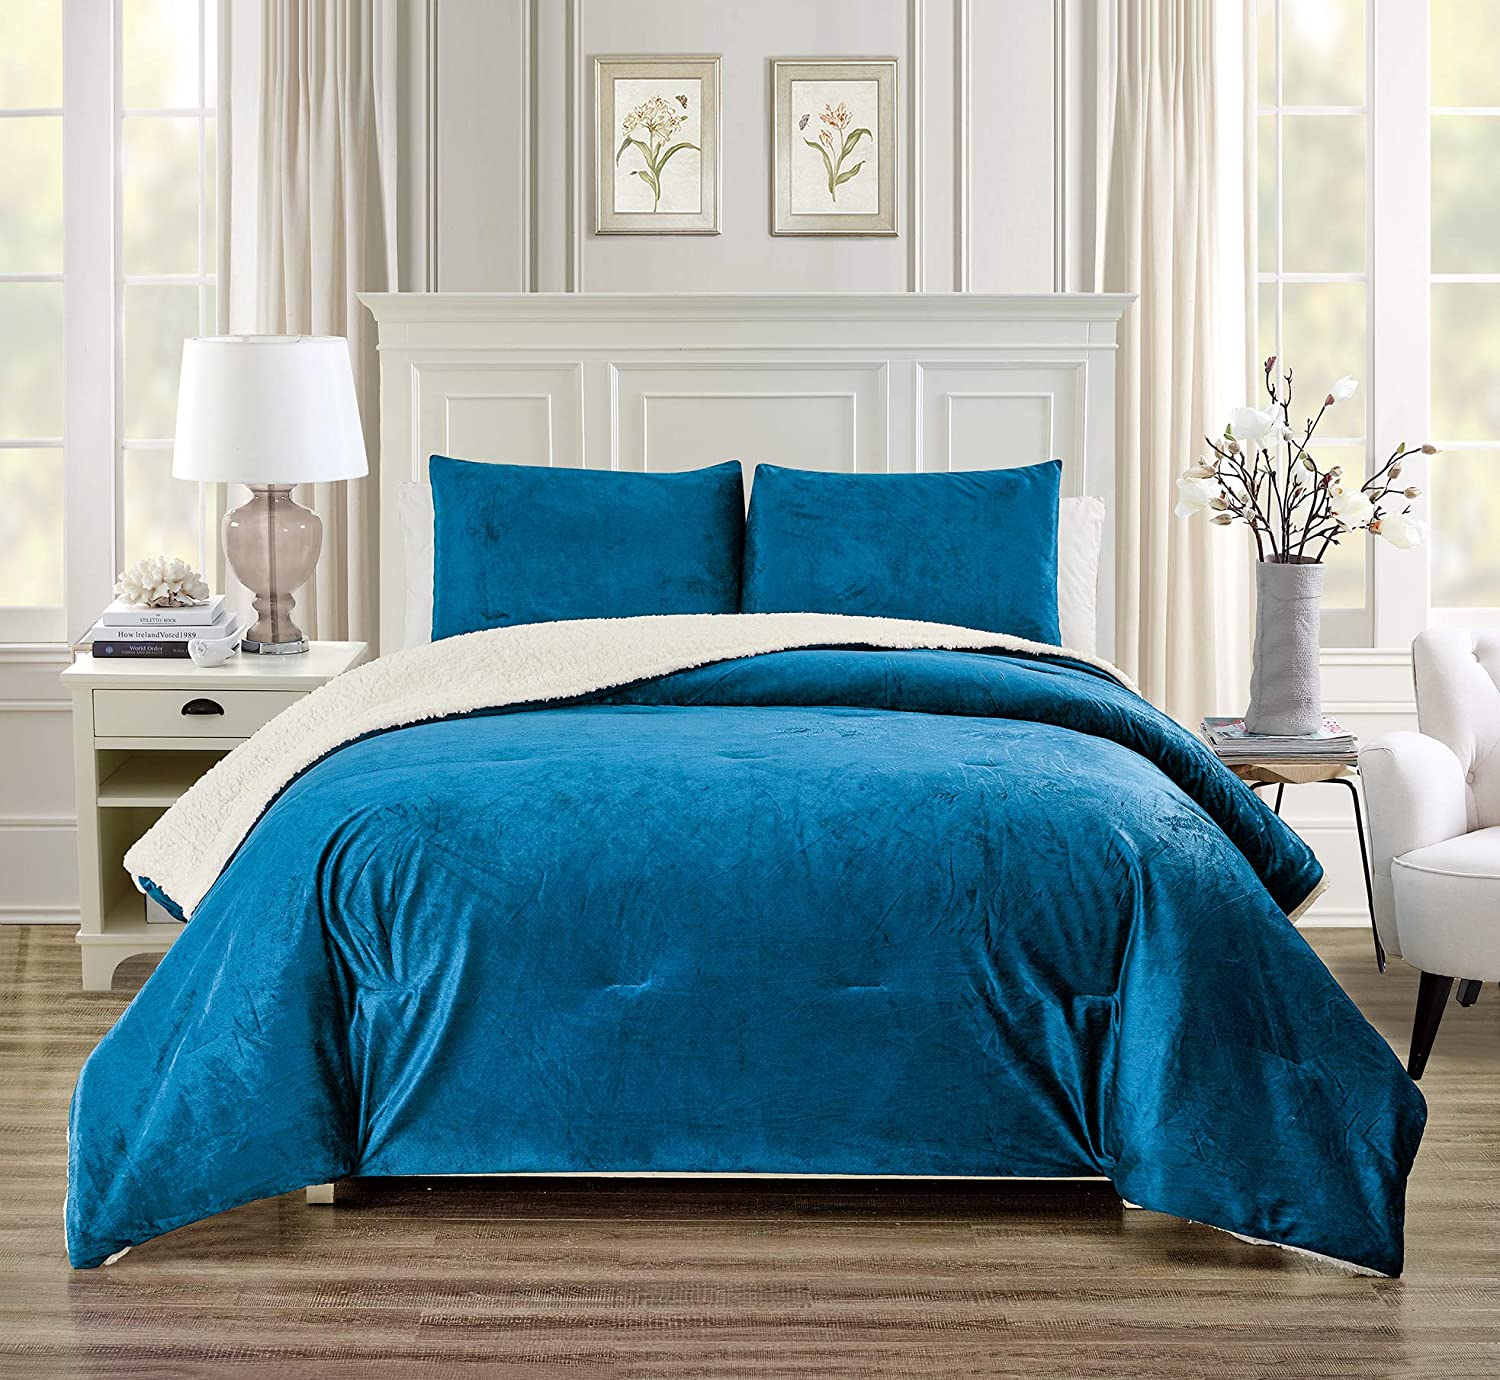 GrandLinen 3 Piece (California) Cal King Size Solid Teal Blue Micromink Velvet Comforter Set with Ultra Soft Sherpa Borrego Backing. Warm Heavy Weight Bedding